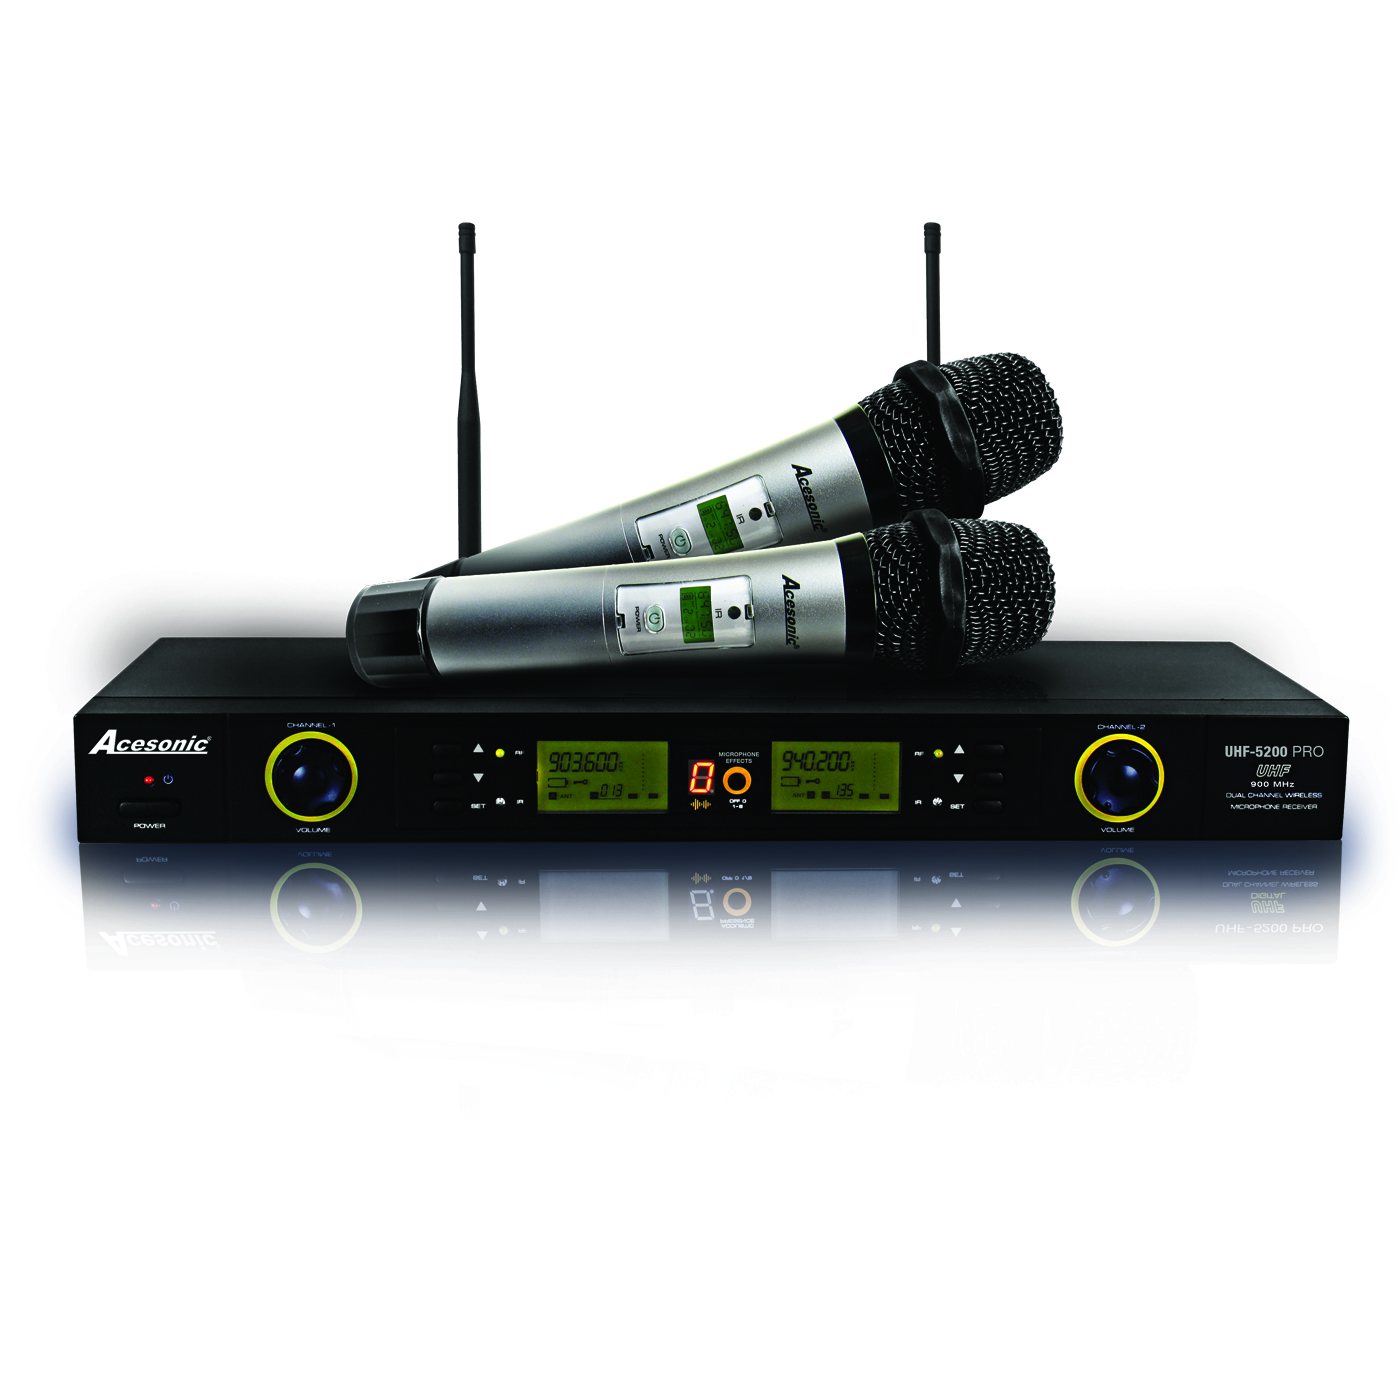 acesonic am 200 karaoke amplifier acesonic sp 450 speaker uhf 5200 pro microphone system with. Black Bedroom Furniture Sets. Home Design Ideas